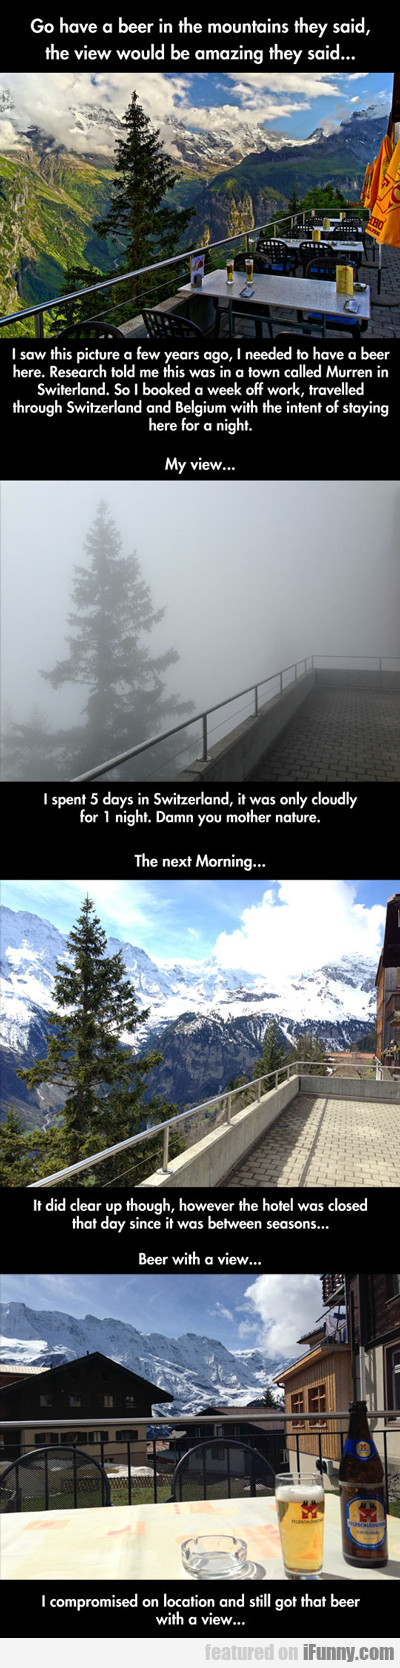 go have a beer in the mountains they said...